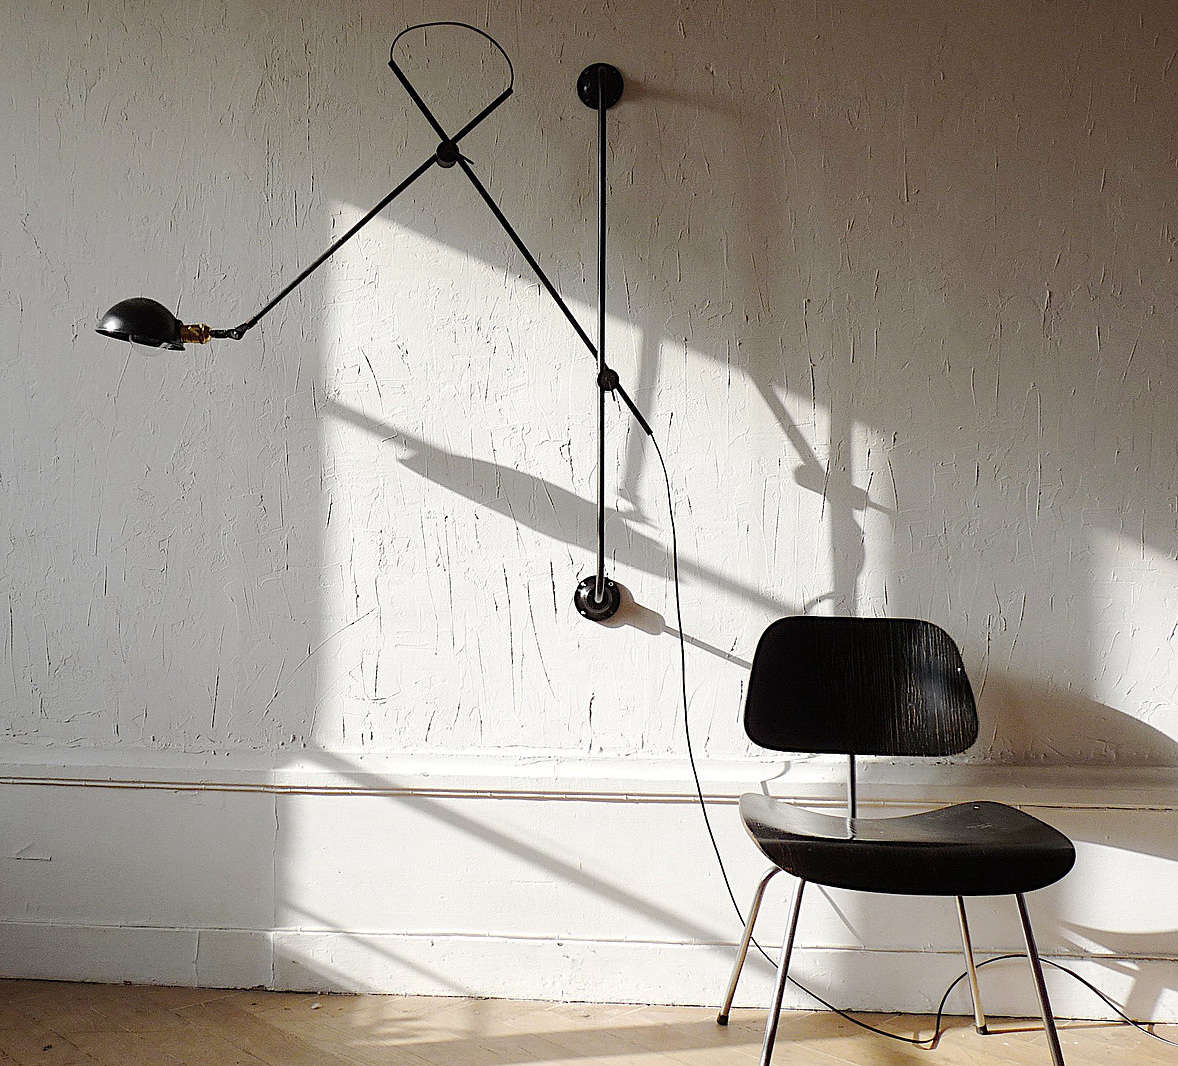 High/Low: The Industrial-Style Articulated Wall Light, French vs. Urban Outfitters Edition